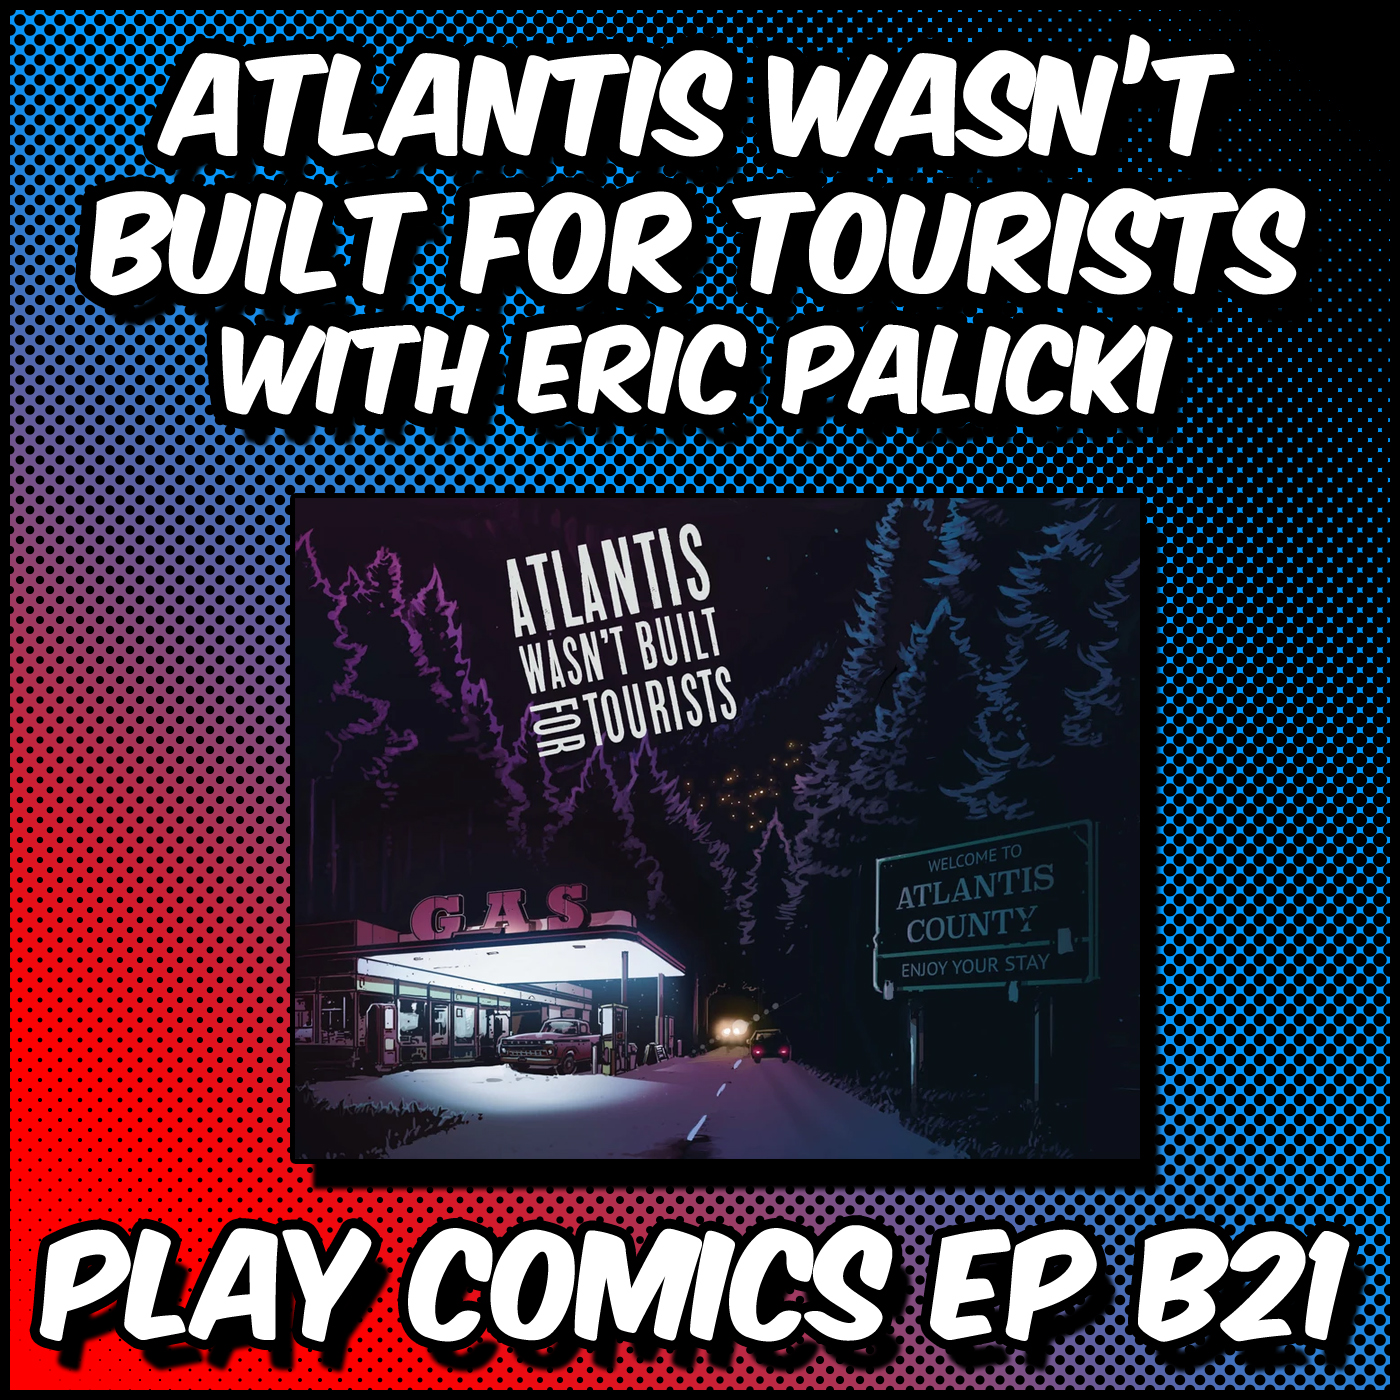 Atlantis Wasn't Built for Tourists with Erik Palicki